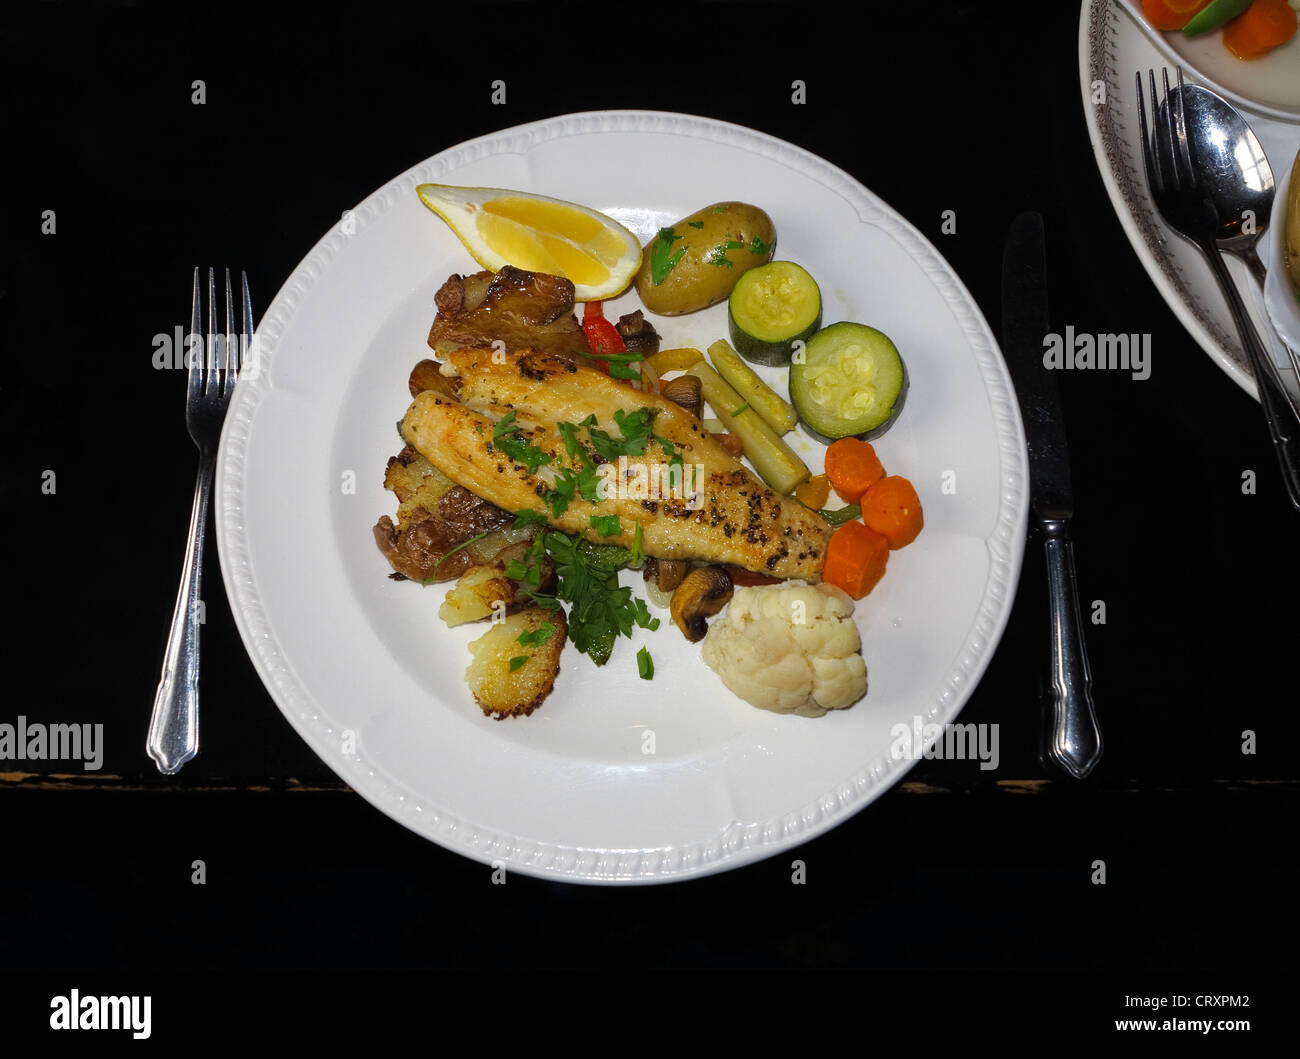 sea-bass-fillet-meal-studio-CRXPM2.jpg